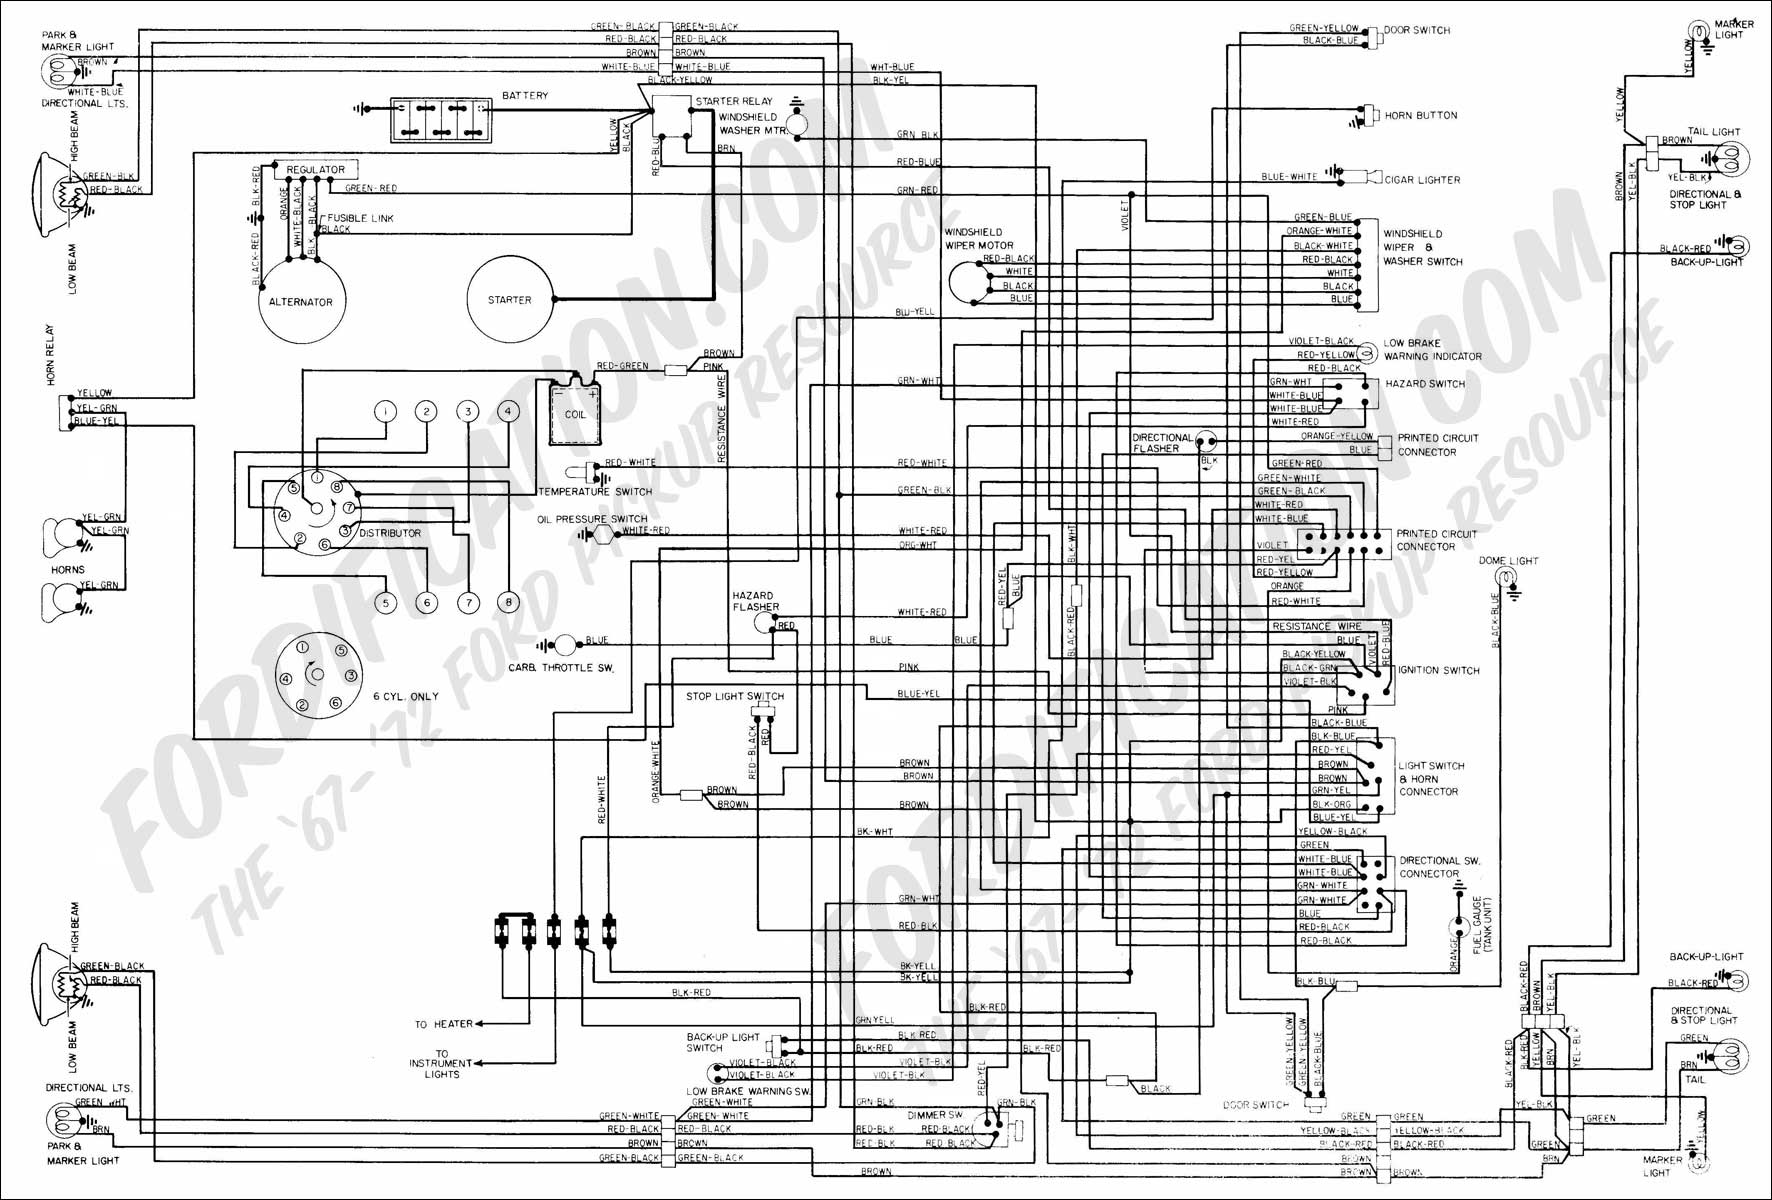 wiring diagram for a ford mustang the wiring diagram 1968 mustang headlight wiring diagrams 1968 car wiring diagram